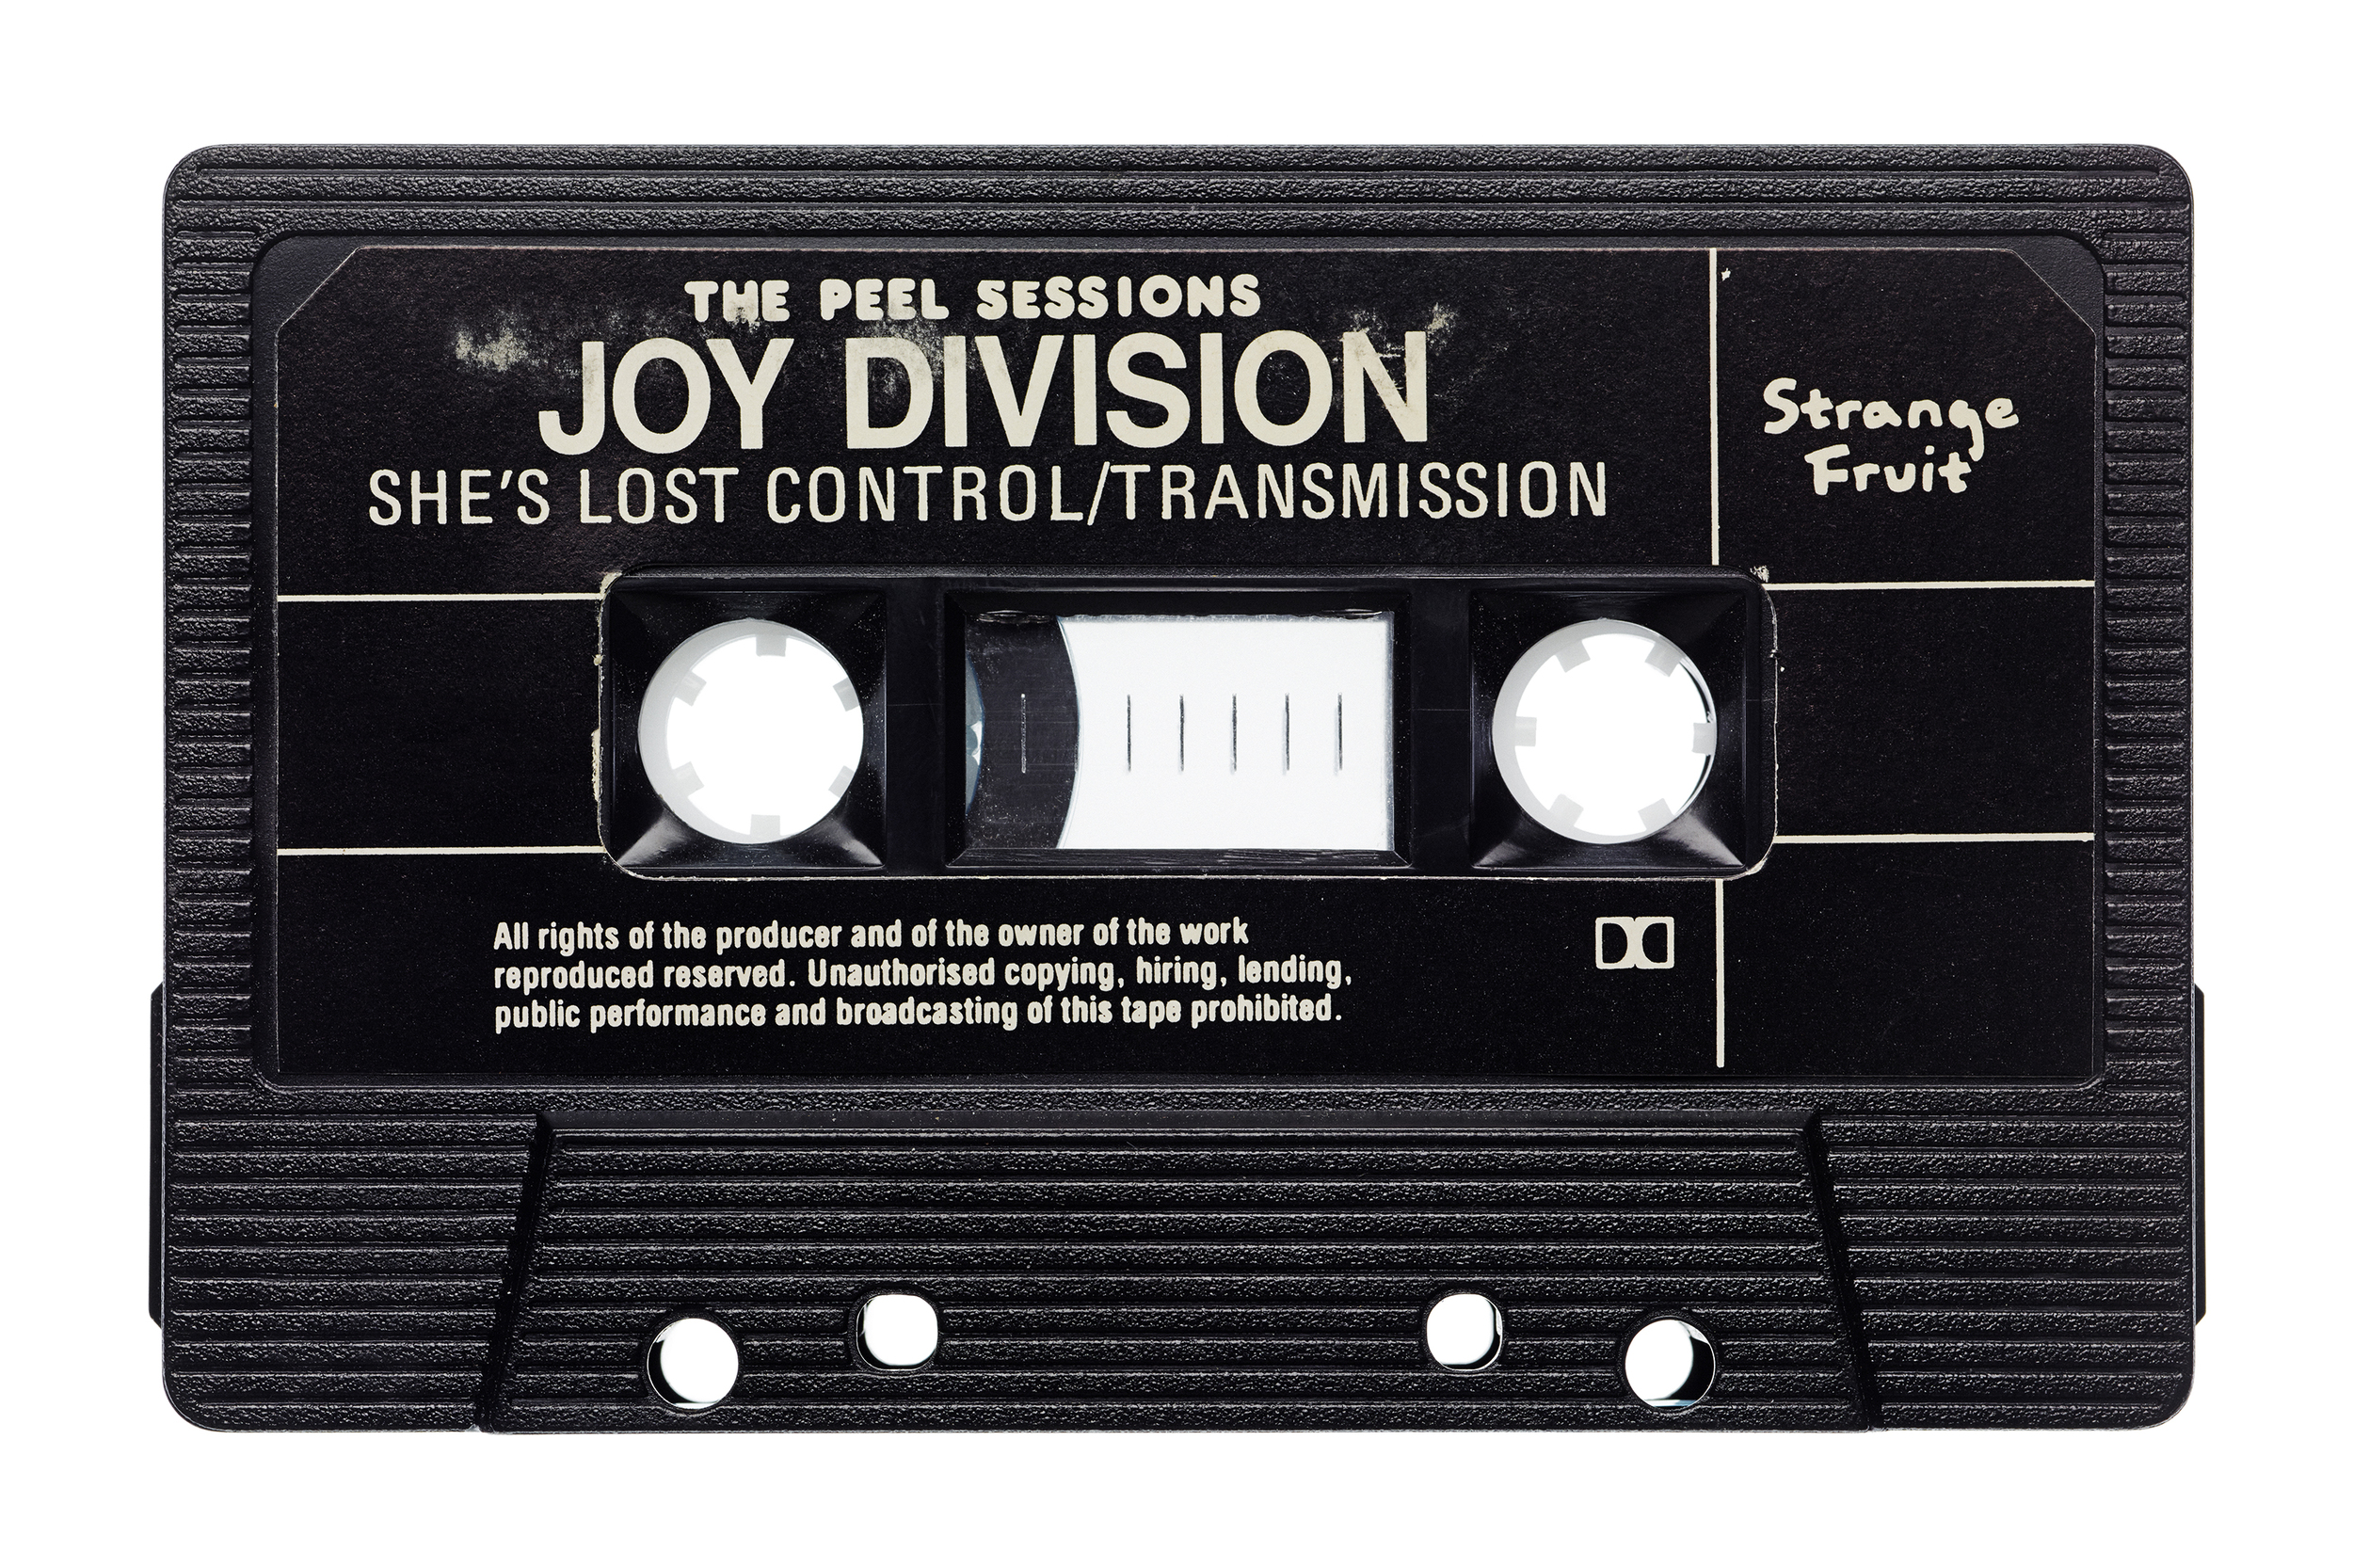 Joy Division - The Peel Sessions  Available through  Clic Gallery  in New York, St. Barth, Marin & East Hampton   Inquire about price